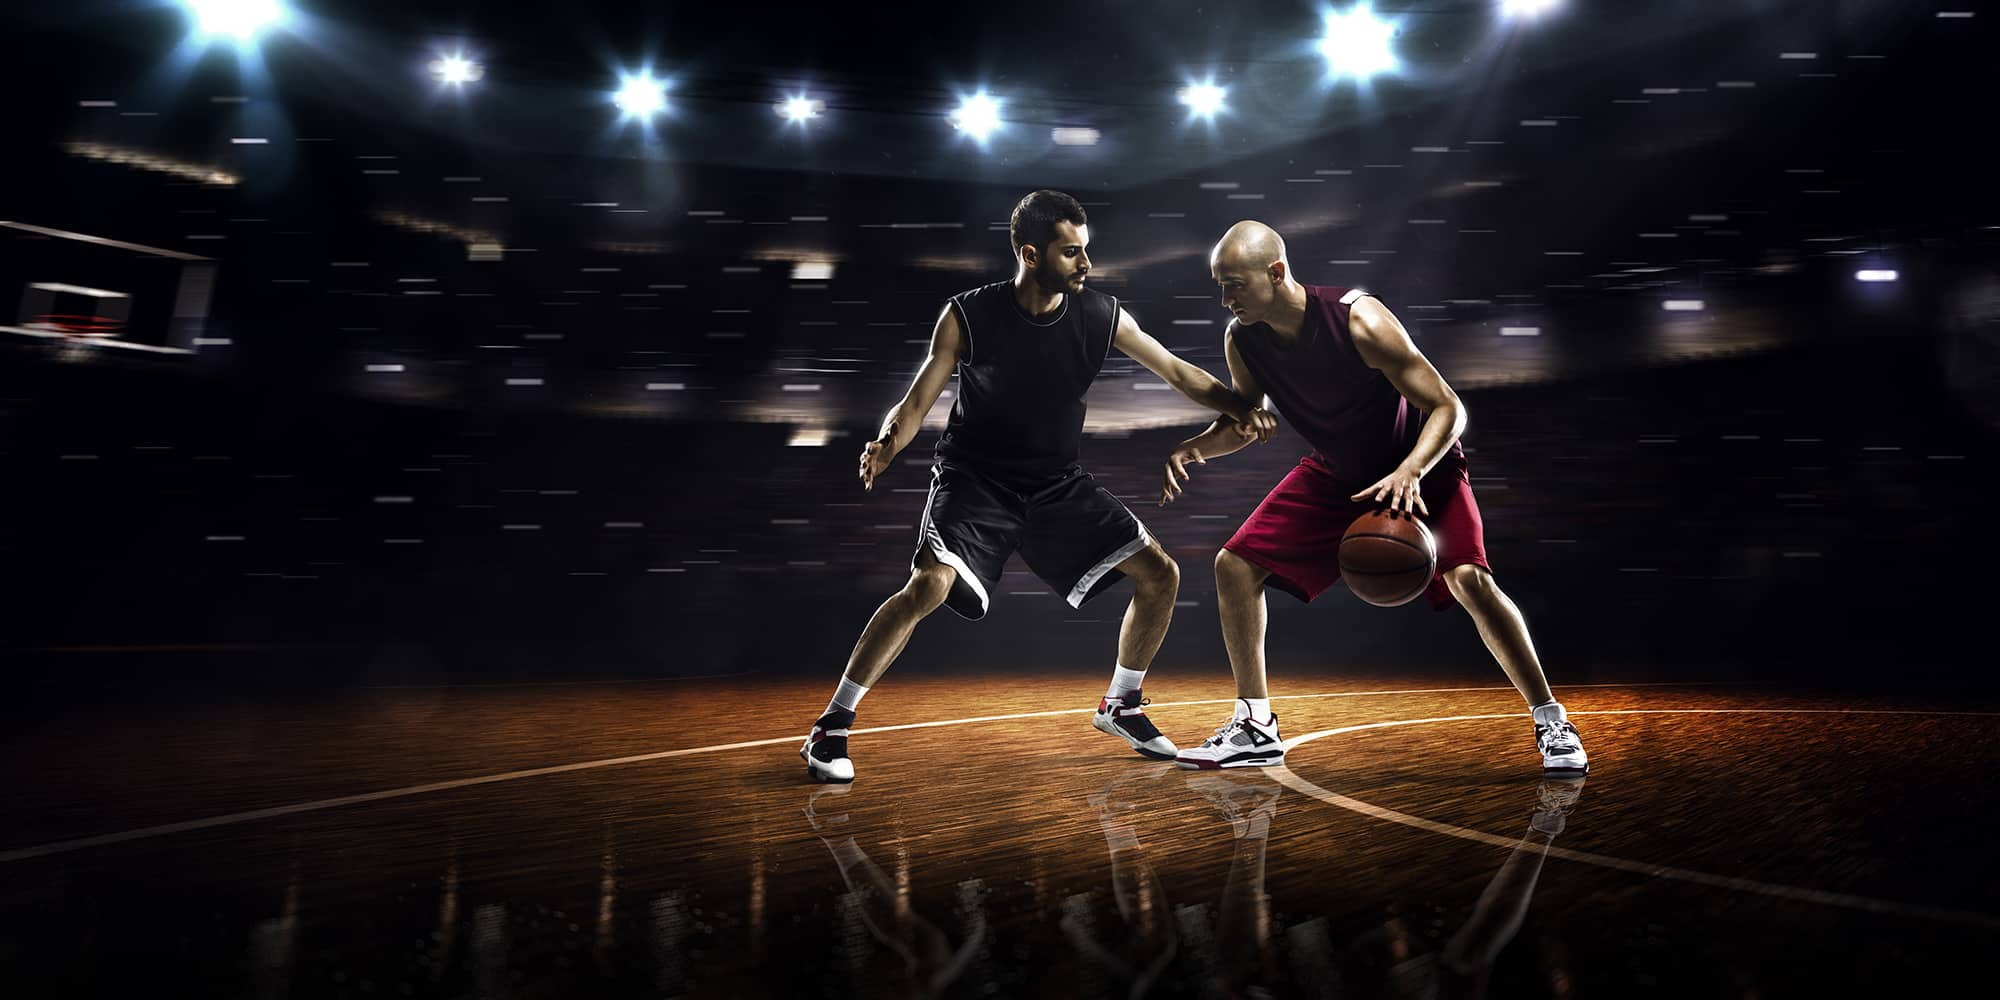 isolation play situation in basketball